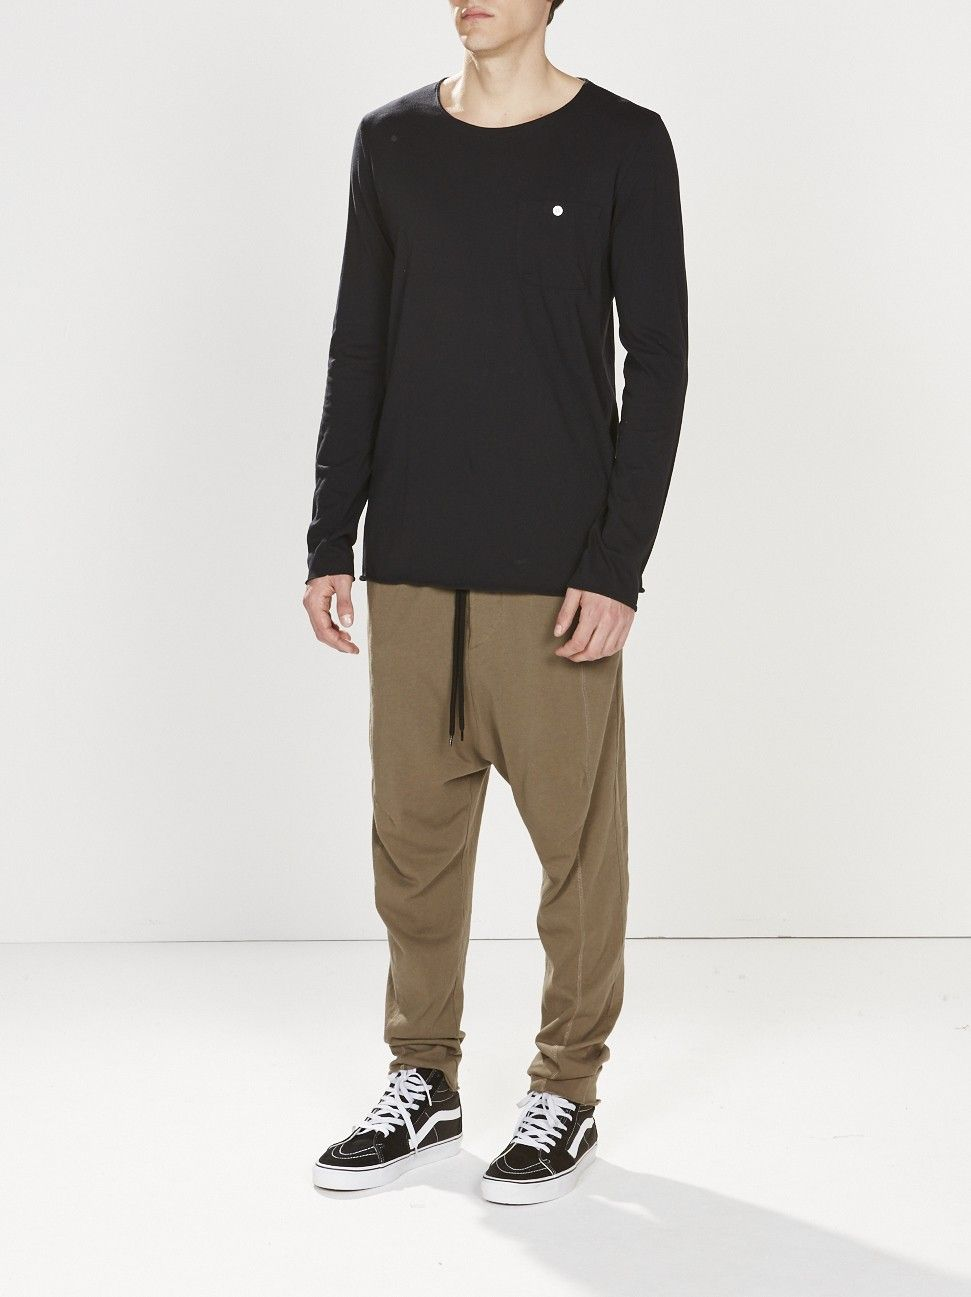 double jersey panelled pant / dark military